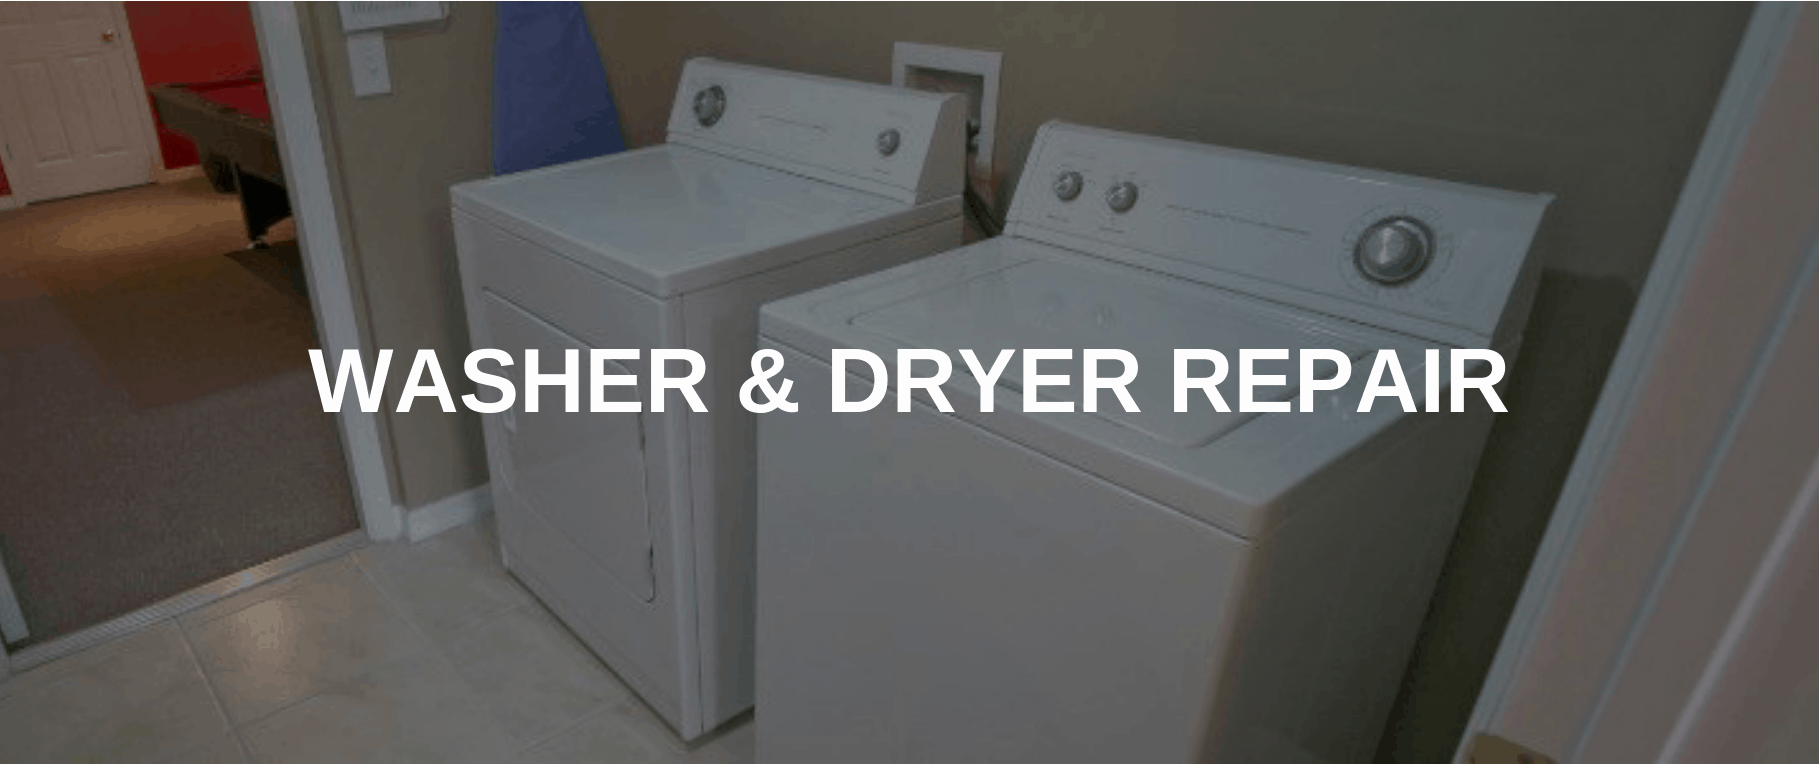 washing machine repair simi valley